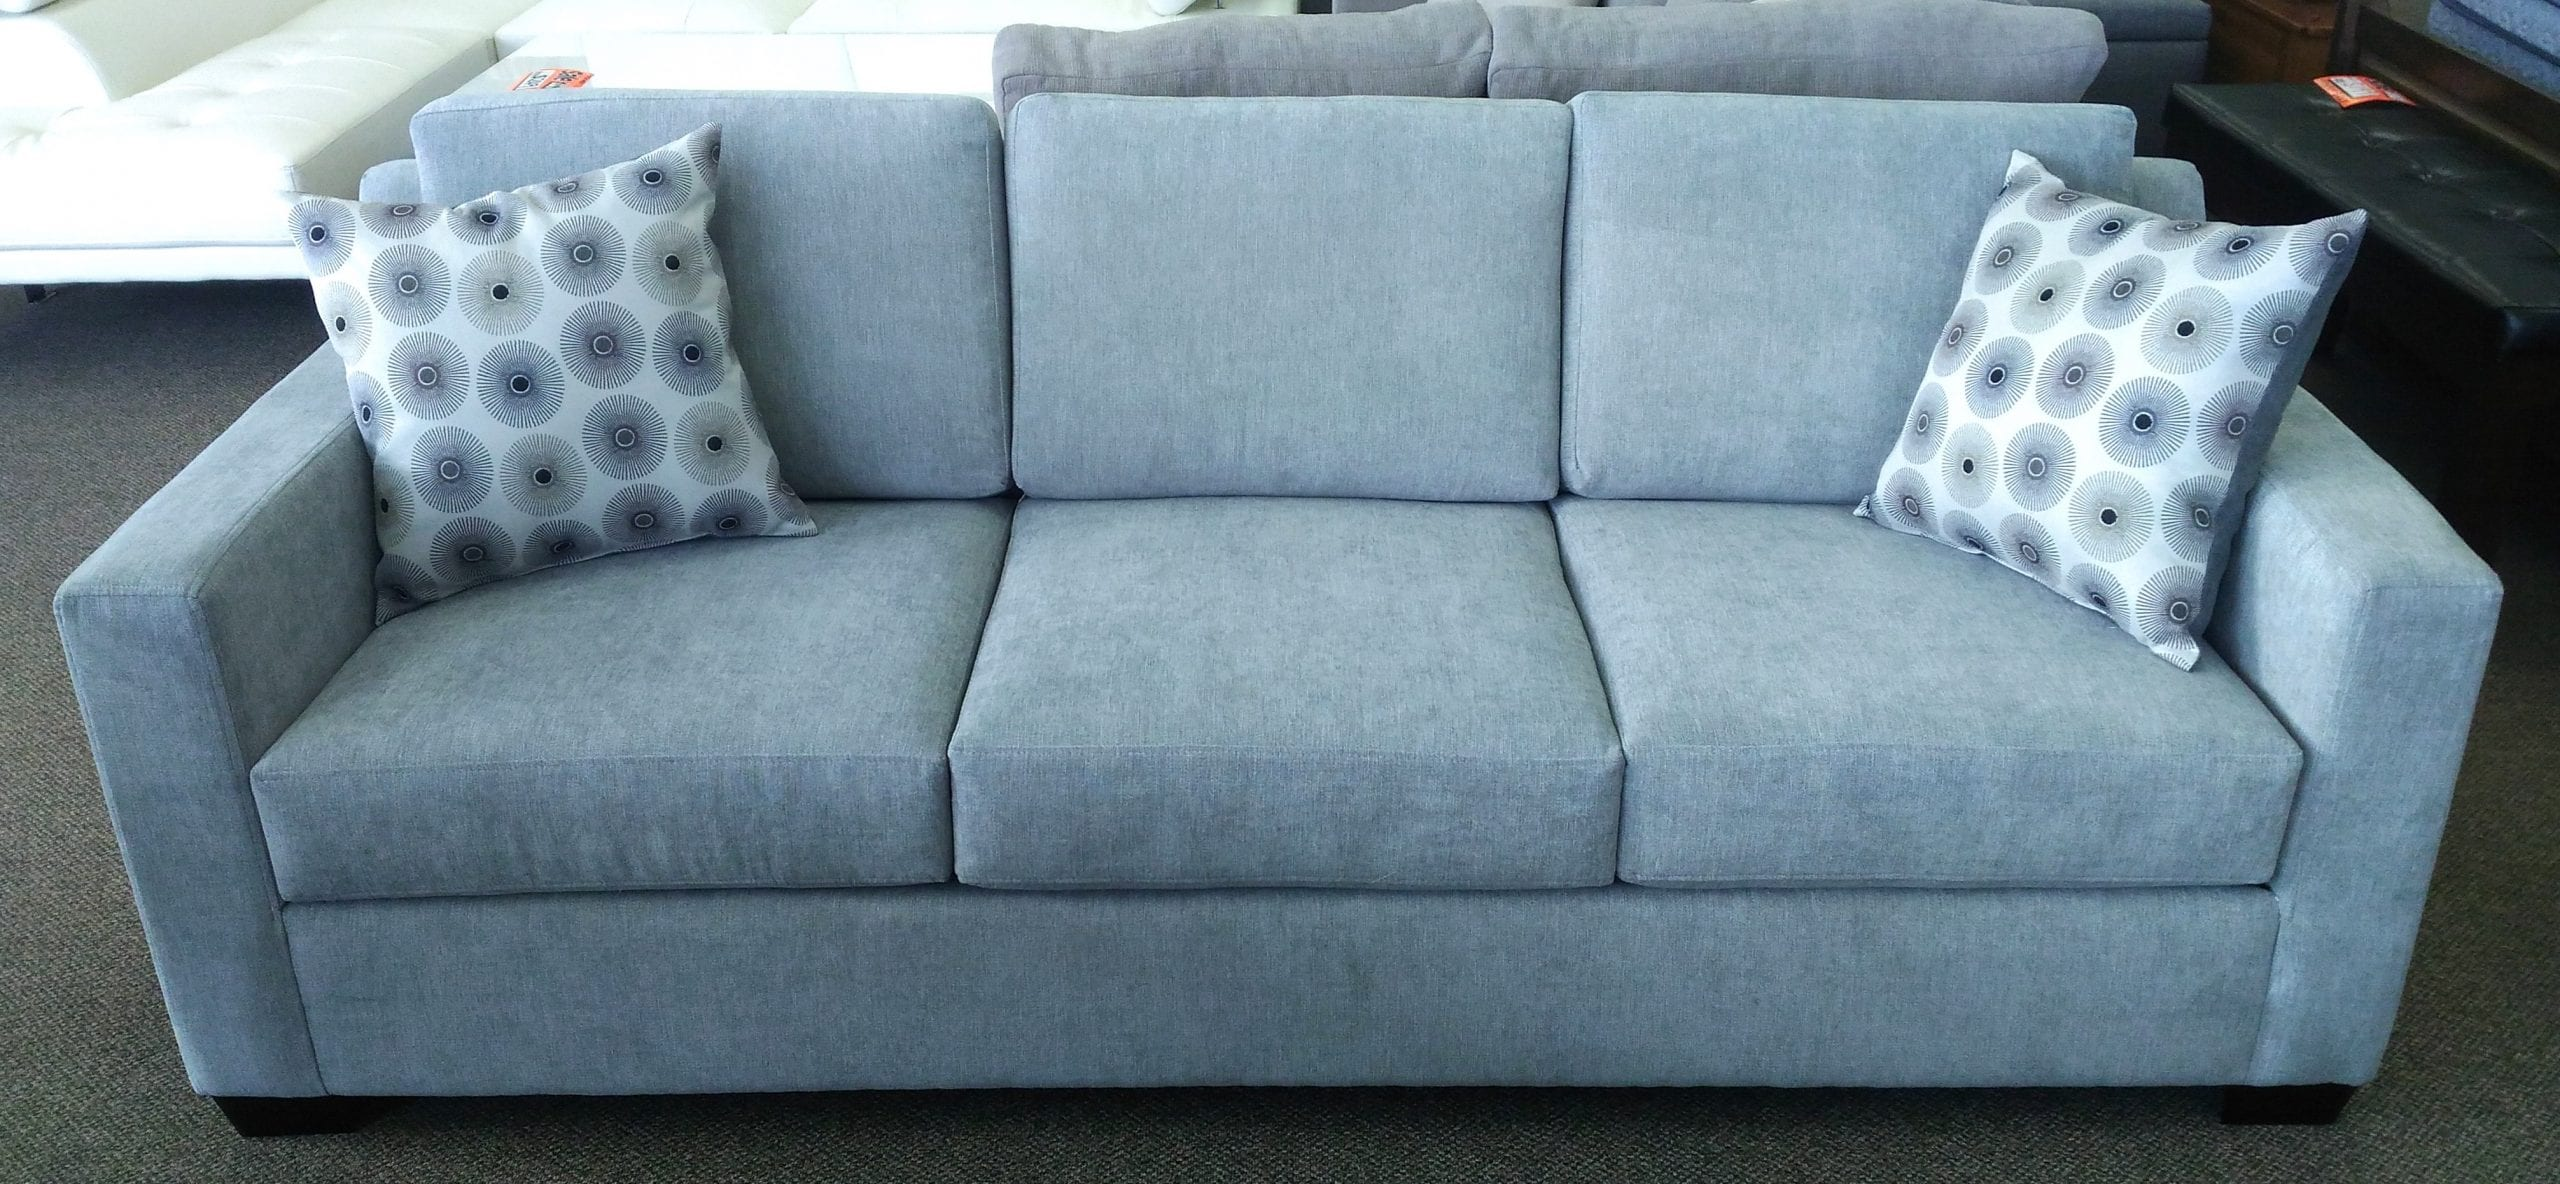 2020 Model Custom Made Sectional Sofa Condo Love